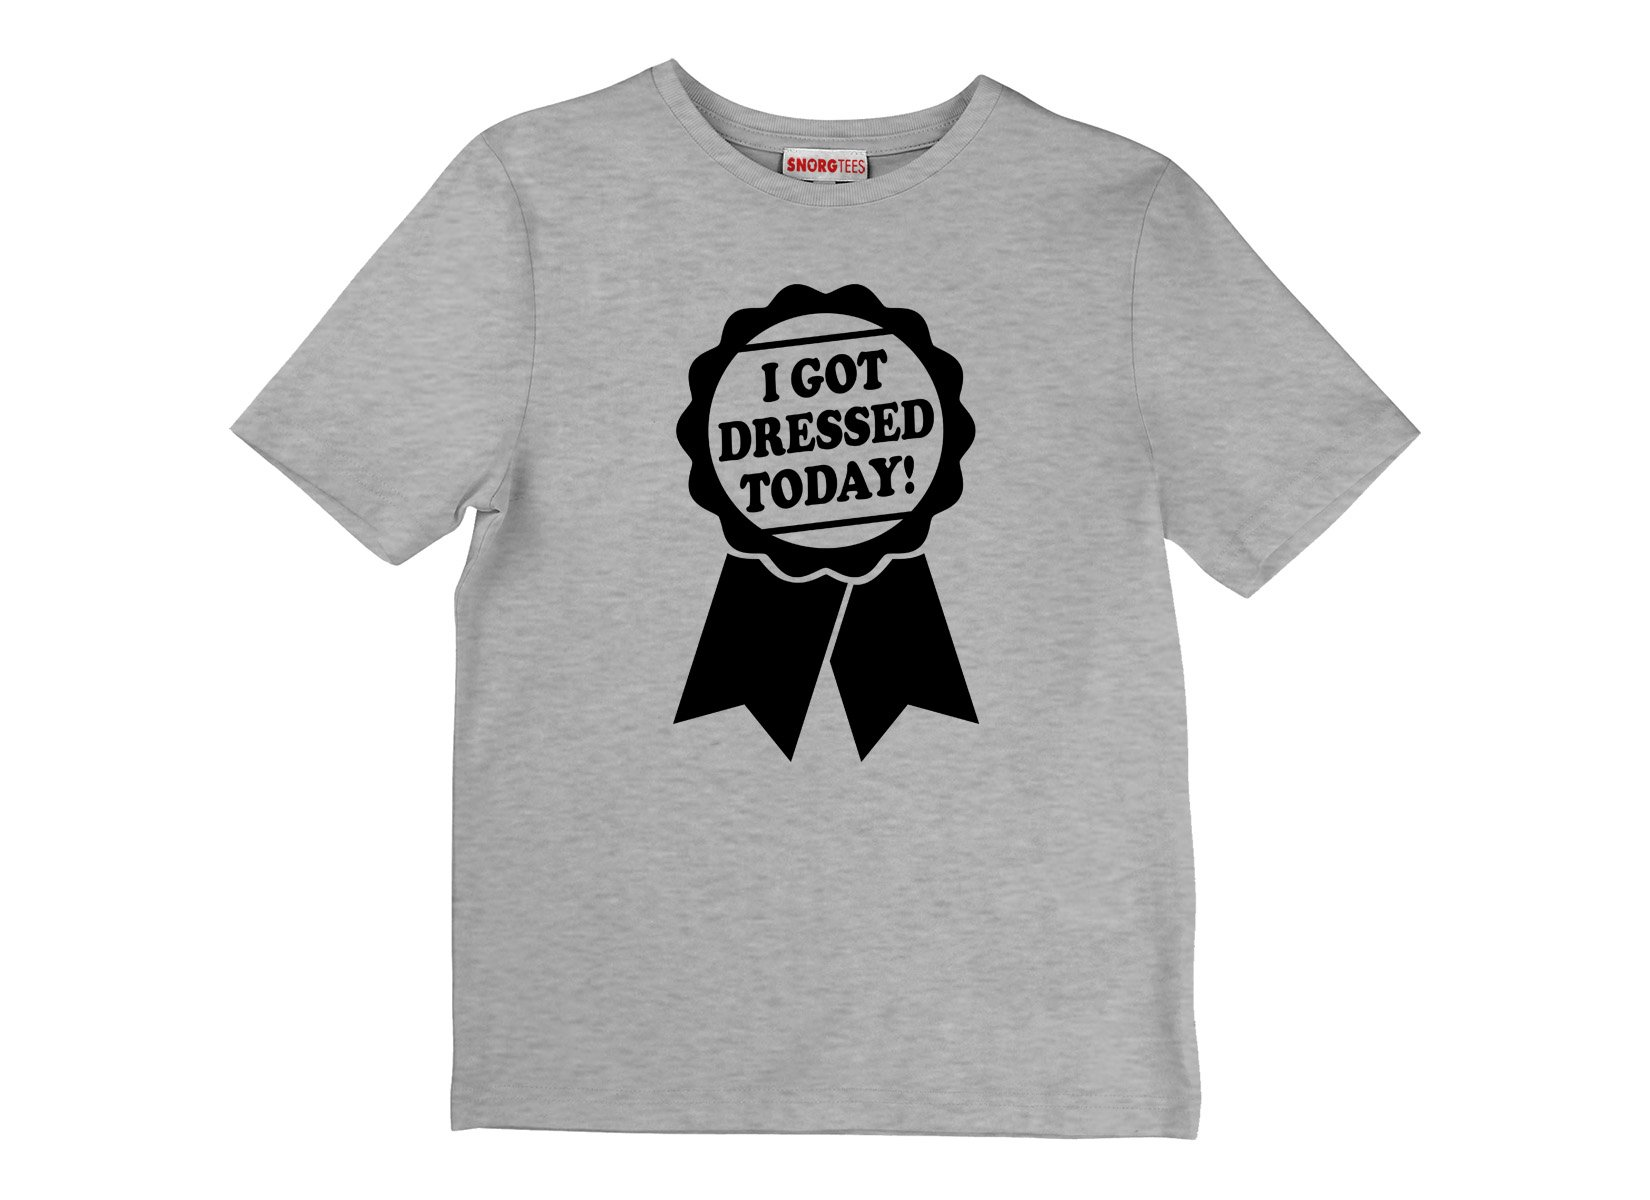 I Got Dressed Today! on Kids T-Shirt